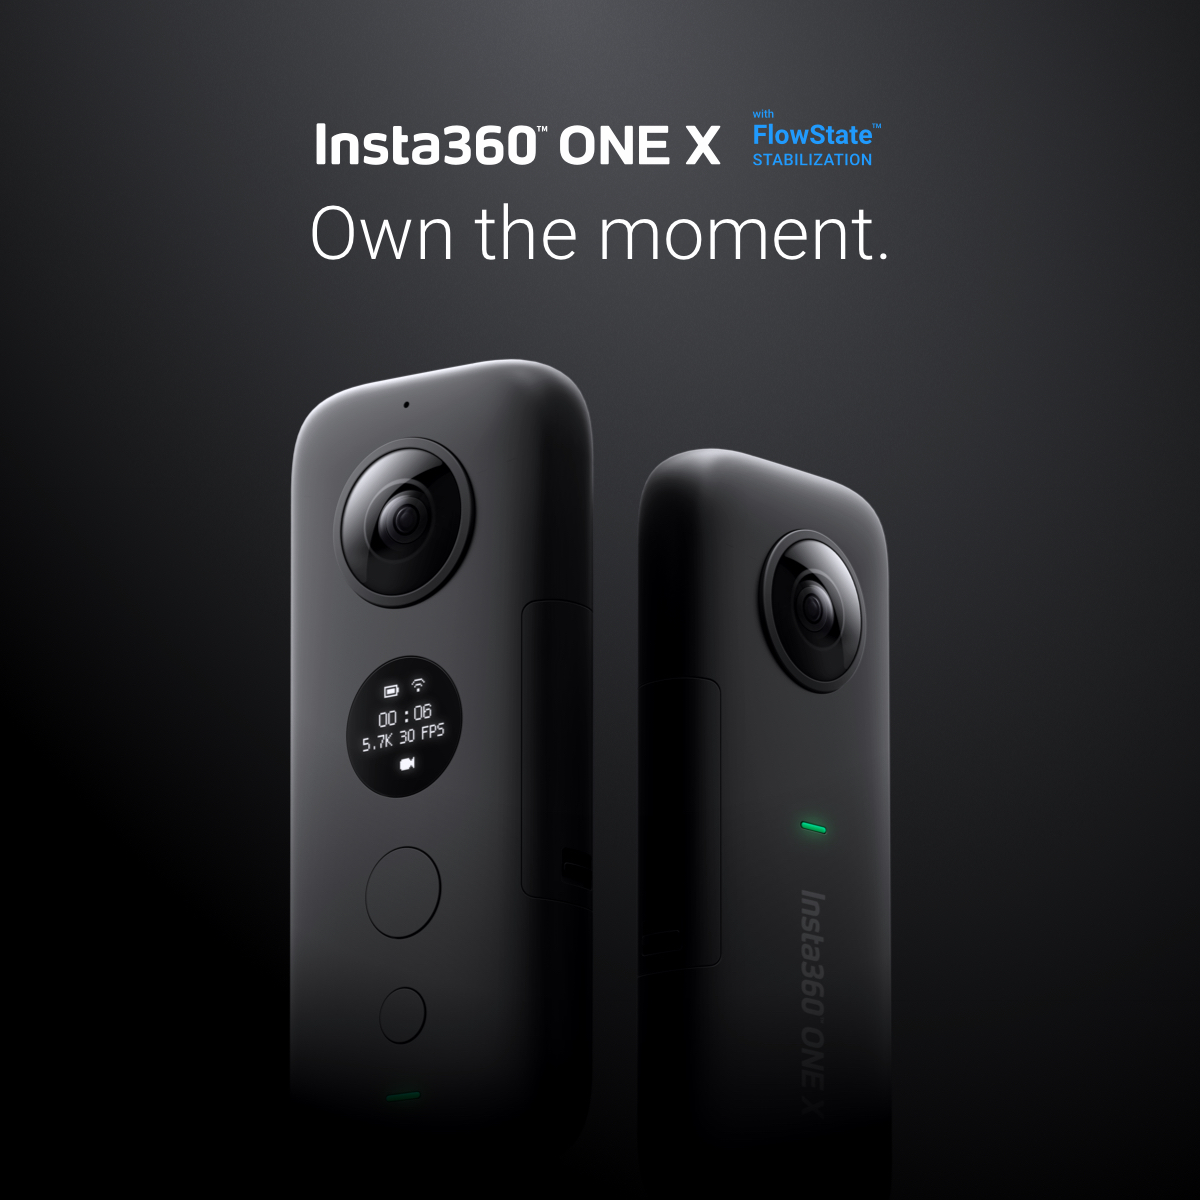 Insta360 ONE X - Own the moment.